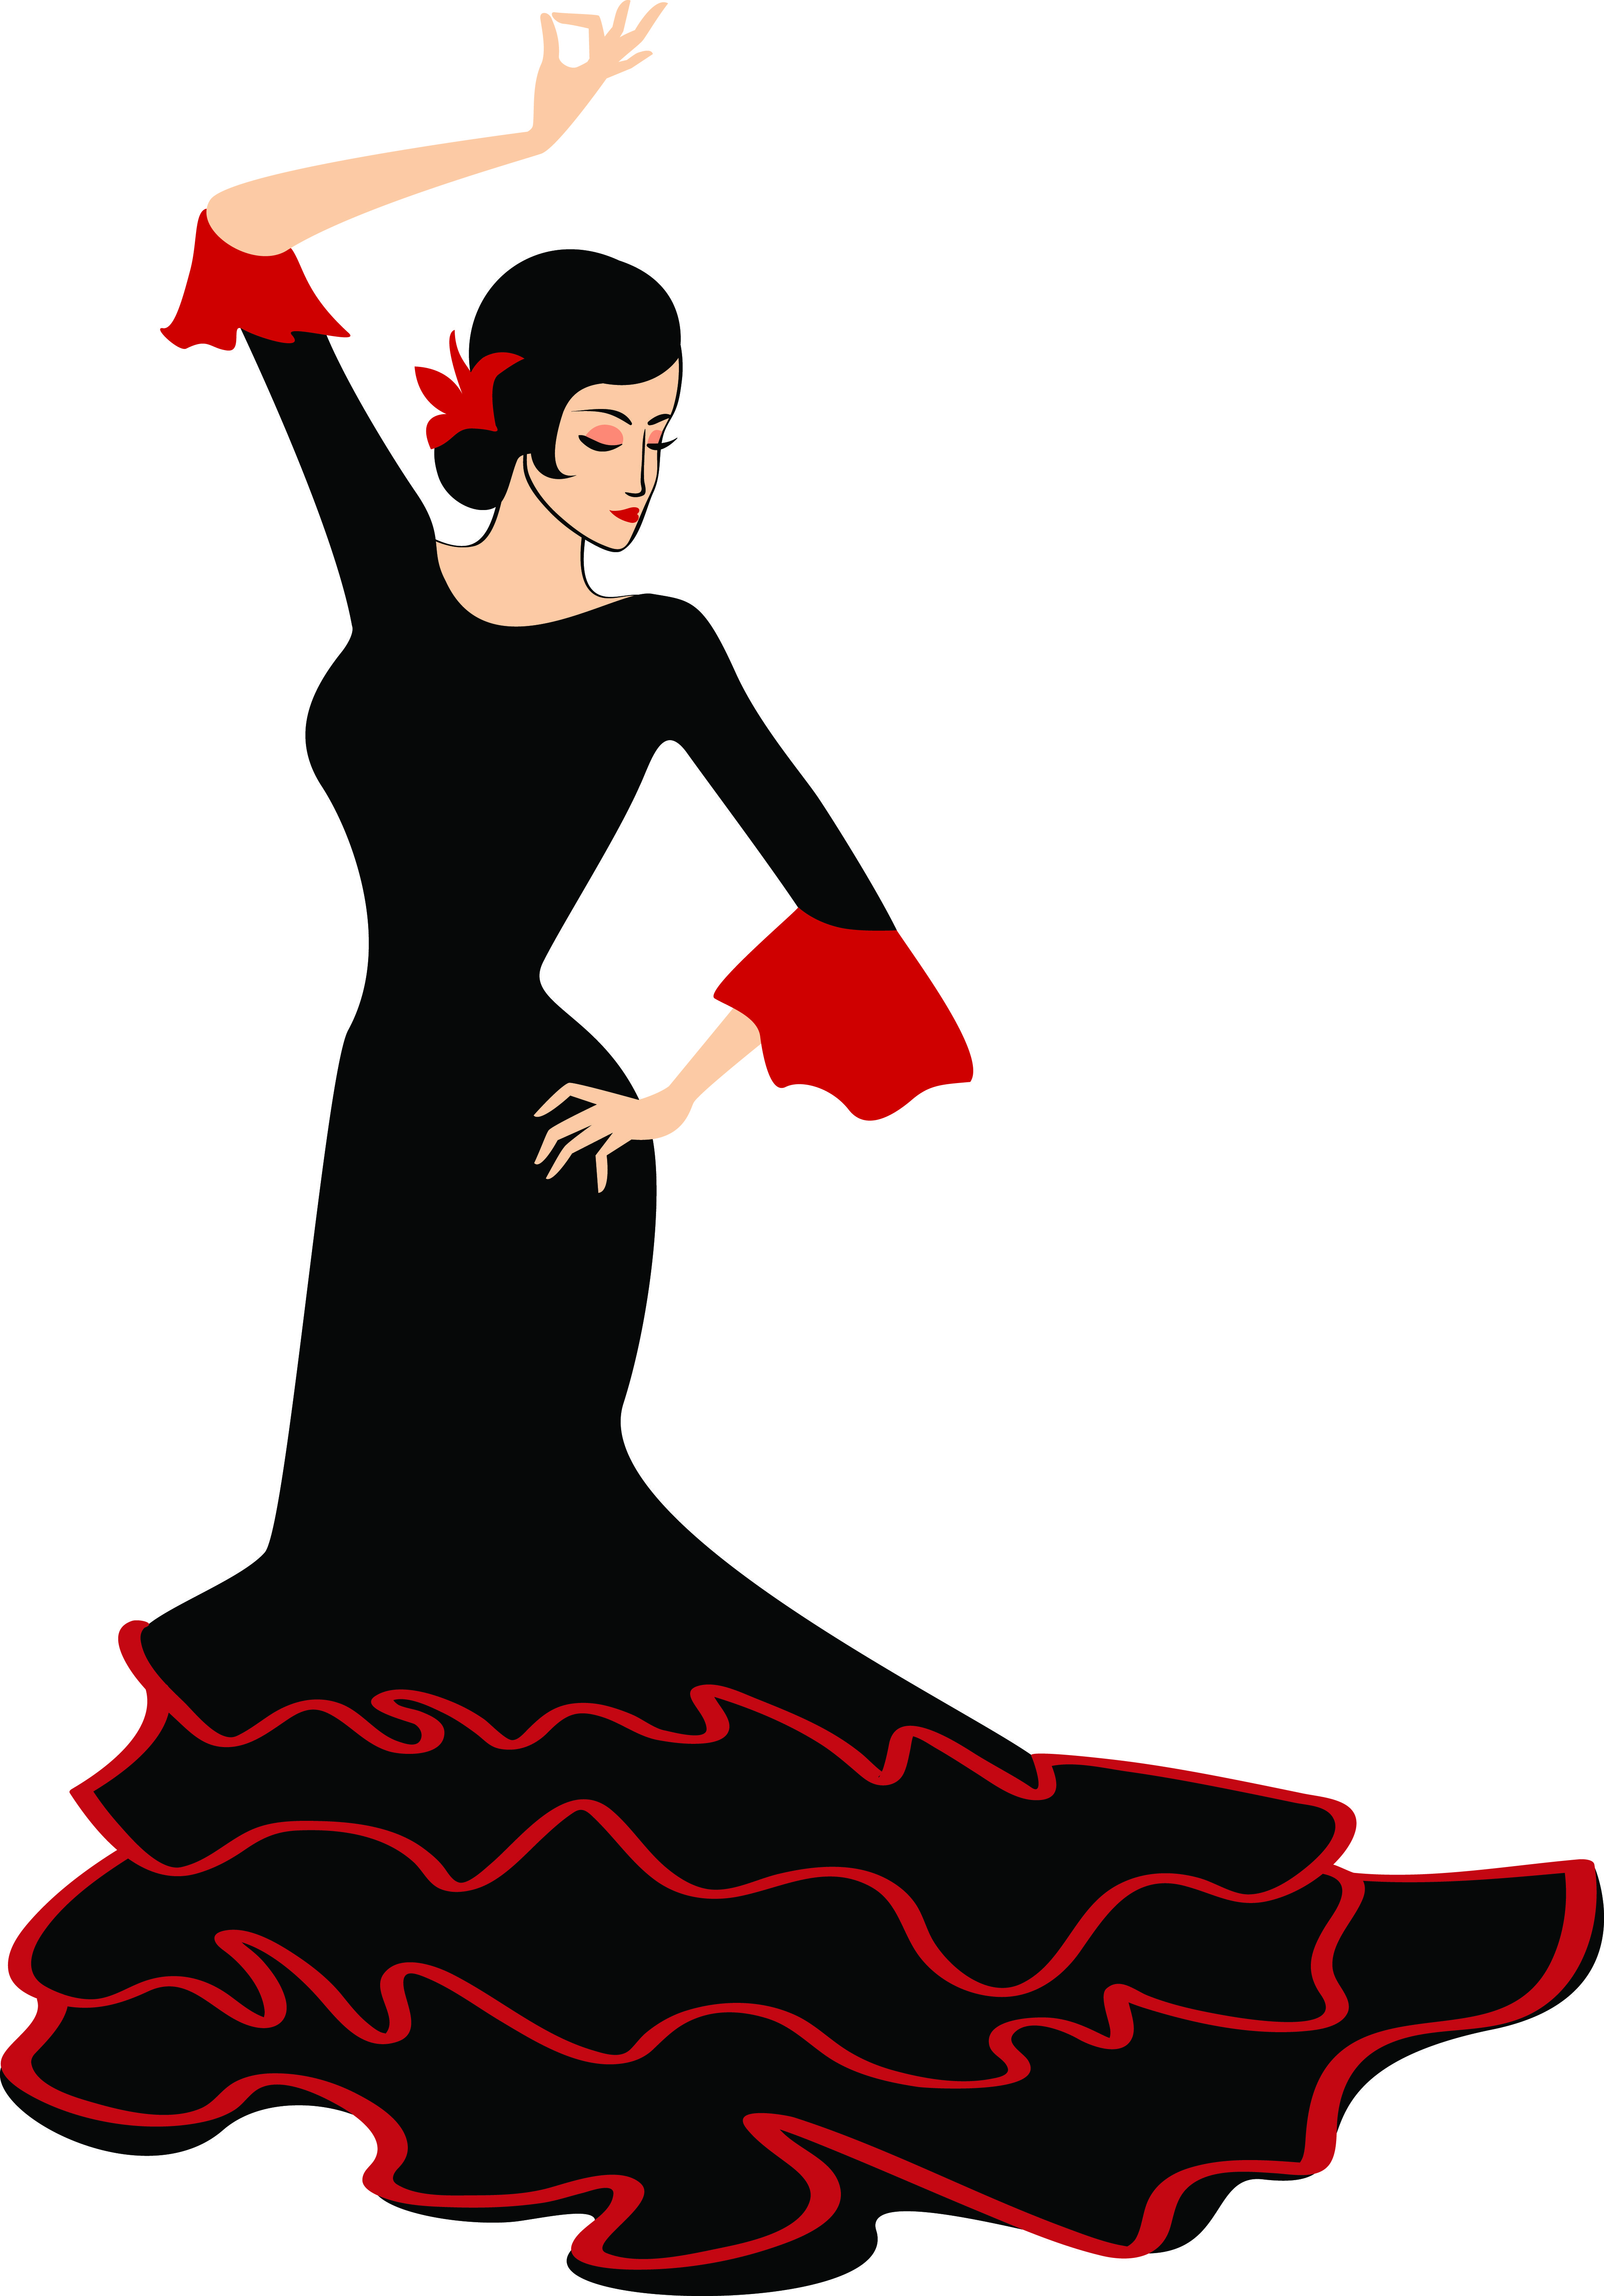 Free Vector Exquisite Cartoon Dancer 05 Vector Graphic Available For Free Download At 4vector Com Check Out Art Dress Flamenco Dancers Ballerina Art Paintings